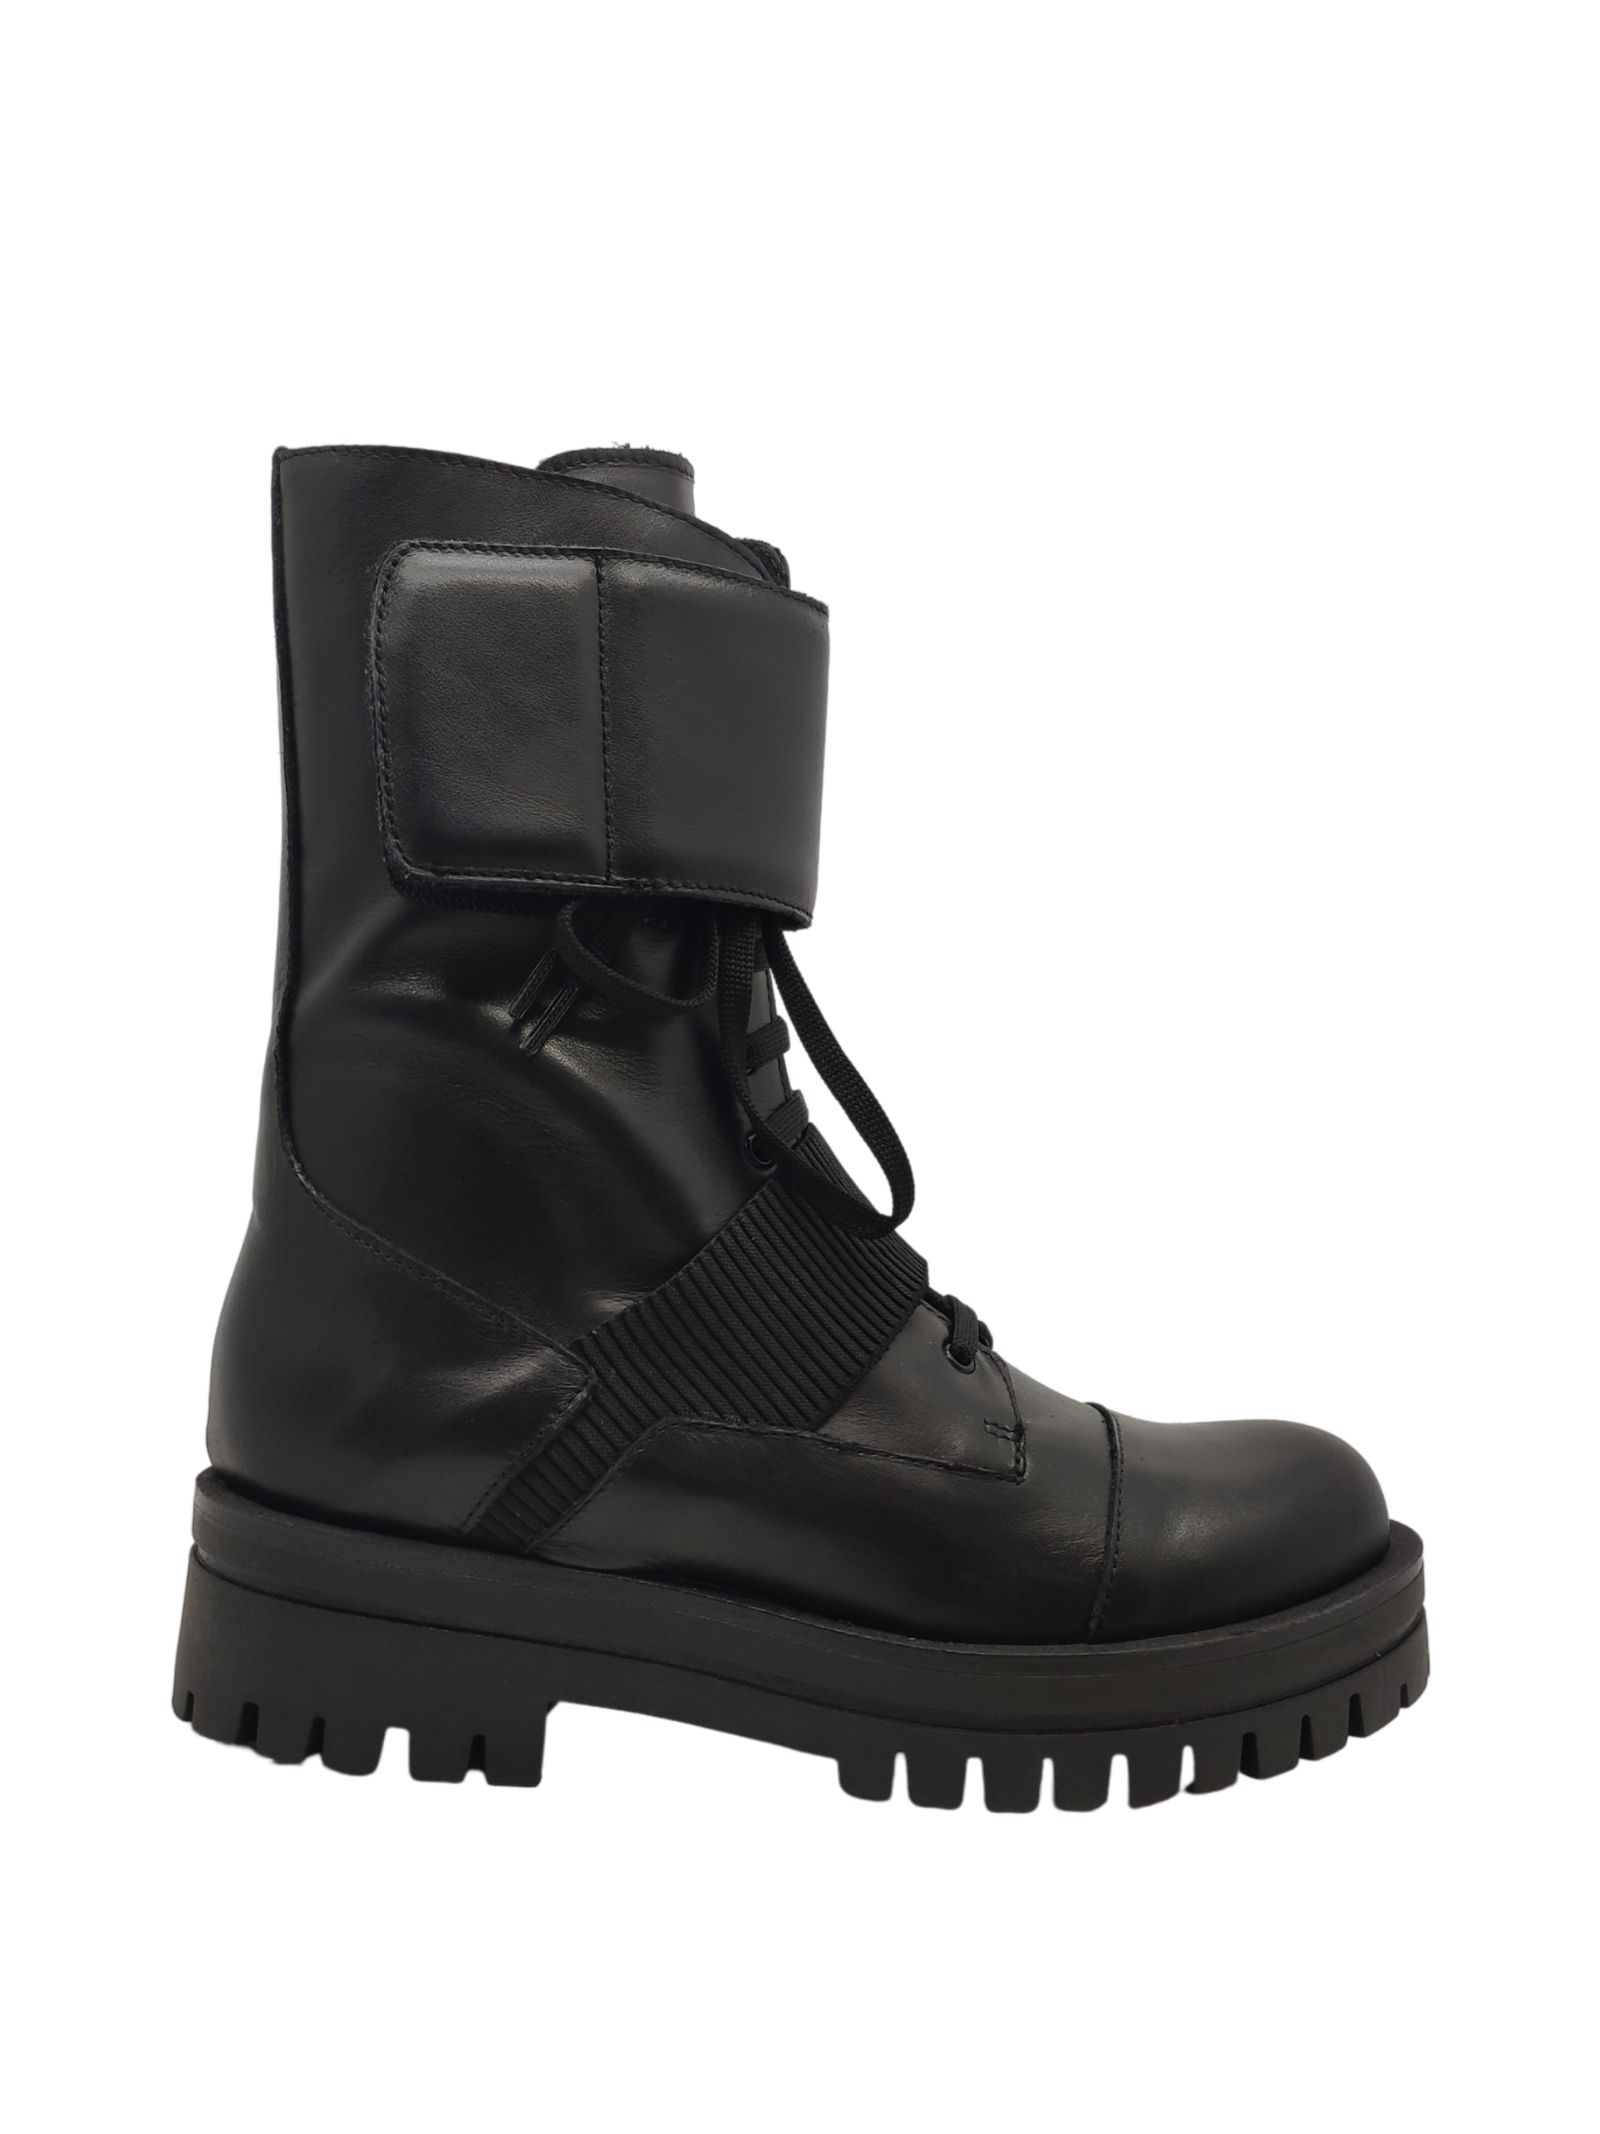 Combat boots for women Spatarella | Ankle Boots | BK146NERO